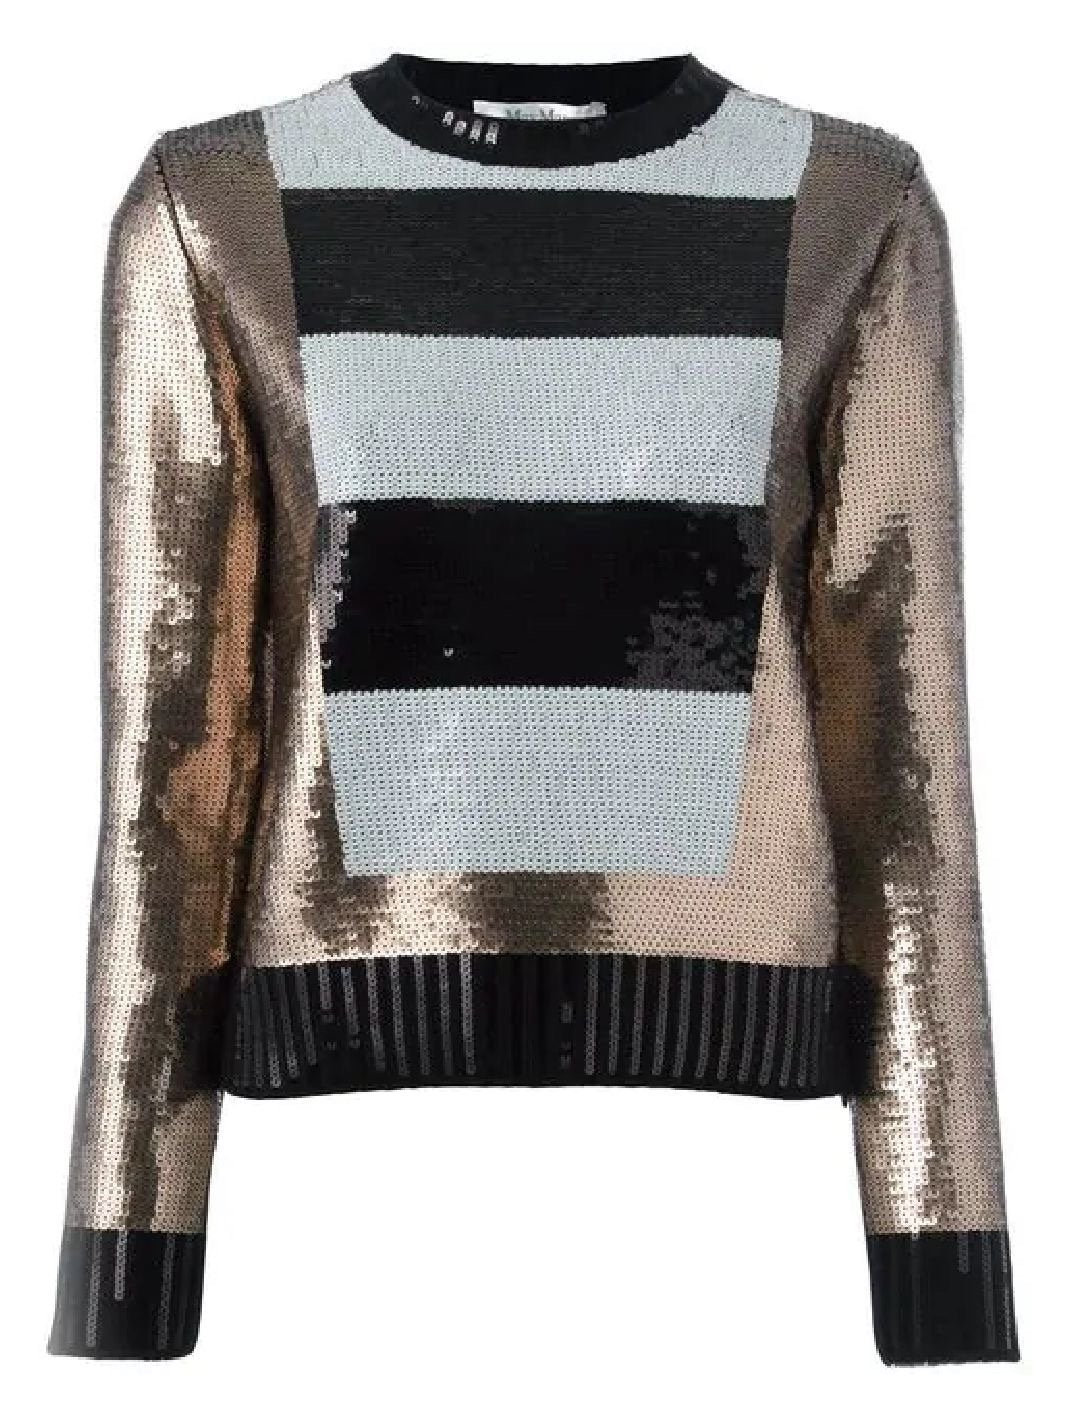 Baviera Sequin Wool Pullover - The Bobby Boga